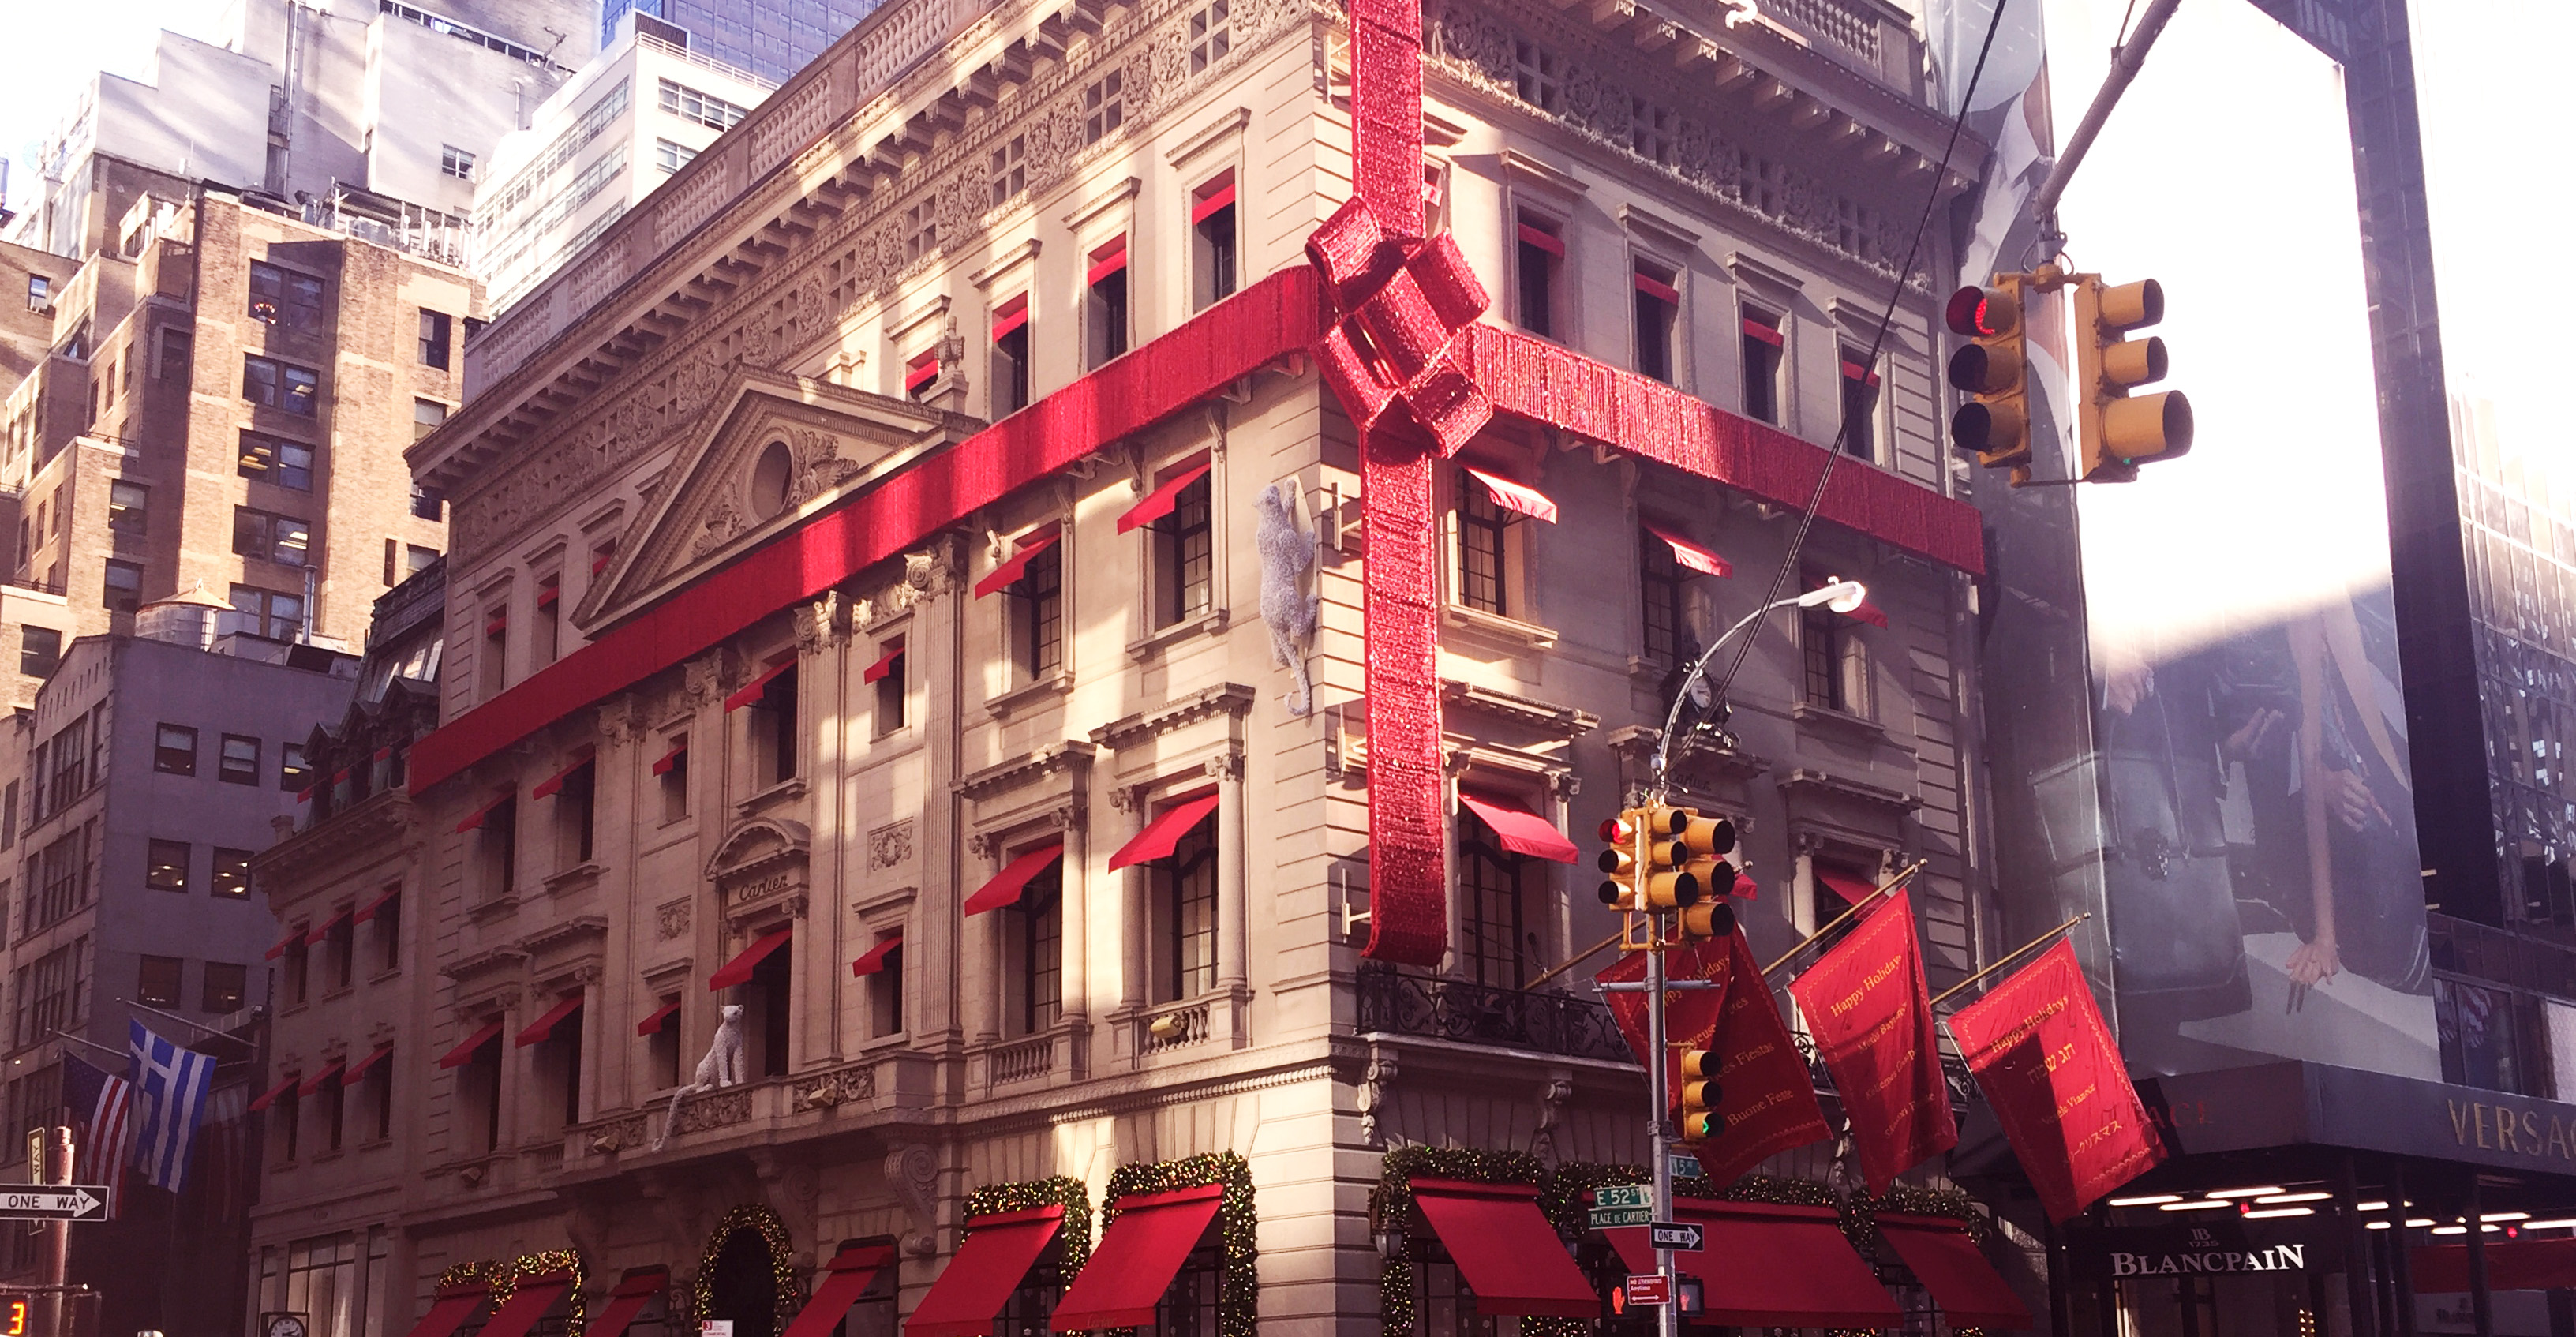 Cartier's iconic window display on 5th Avenue hinting that a package from them will make your holiday that much more magical.